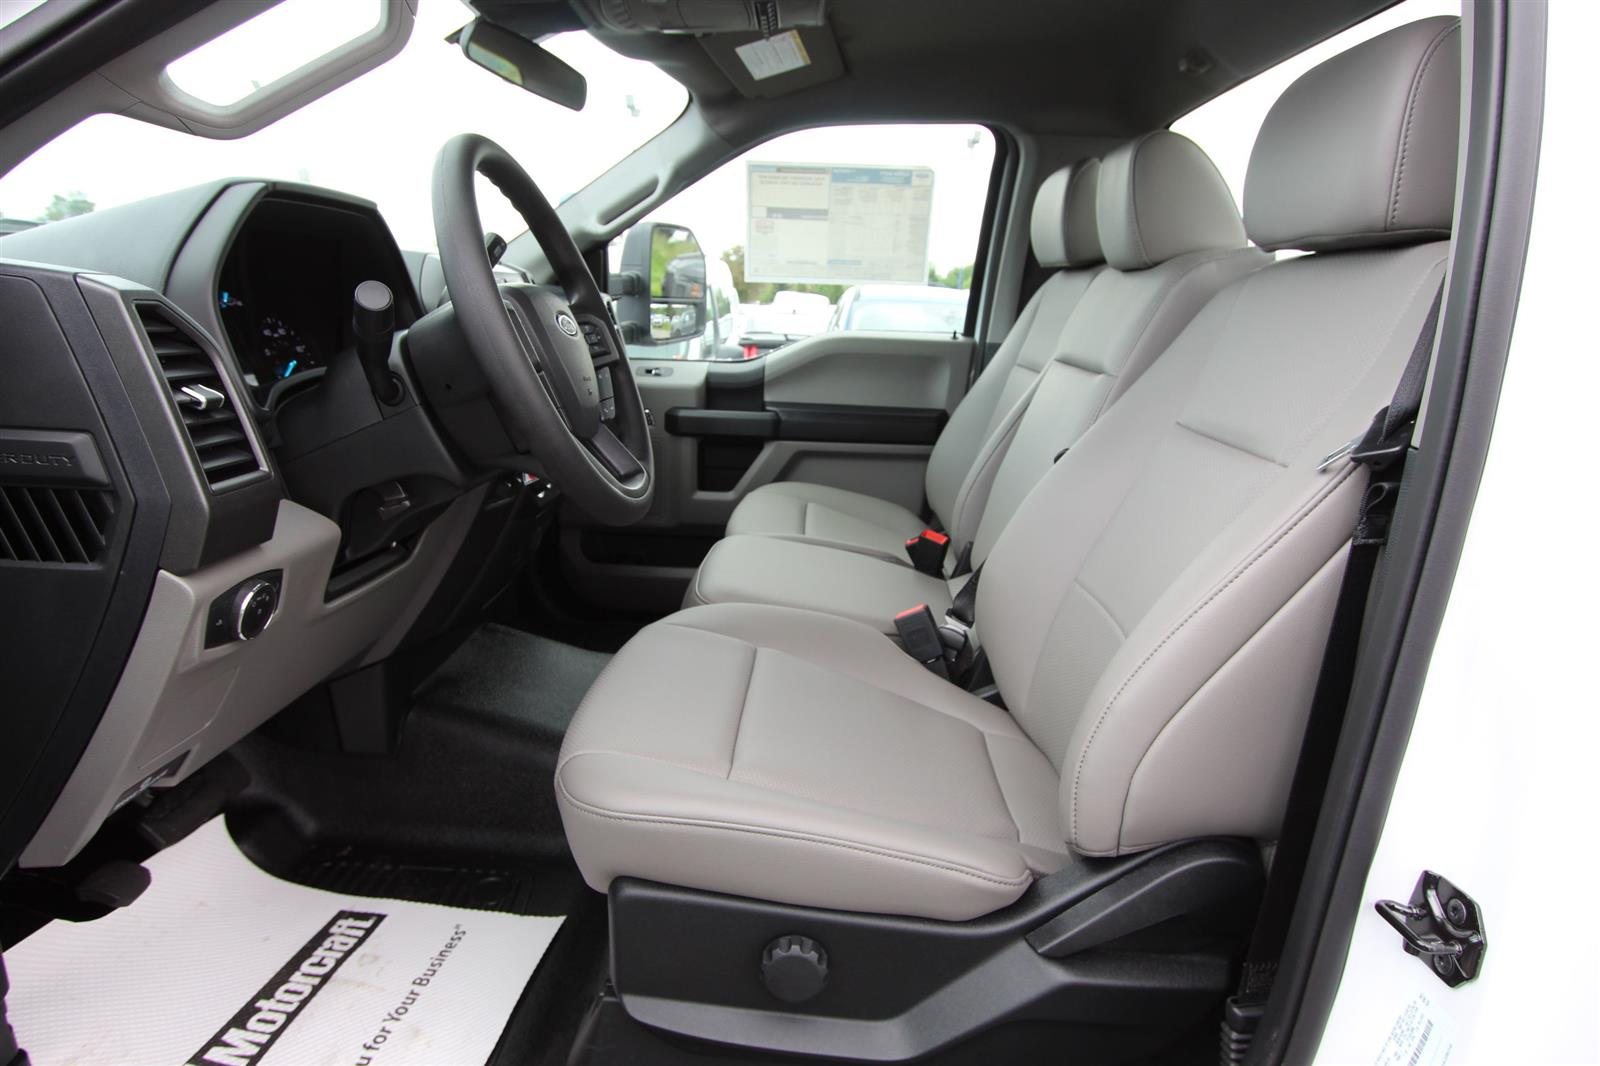 2020 Ford F-550 Regular Cab DRW 4x2, Cab Chassis #E9257 - photo 12